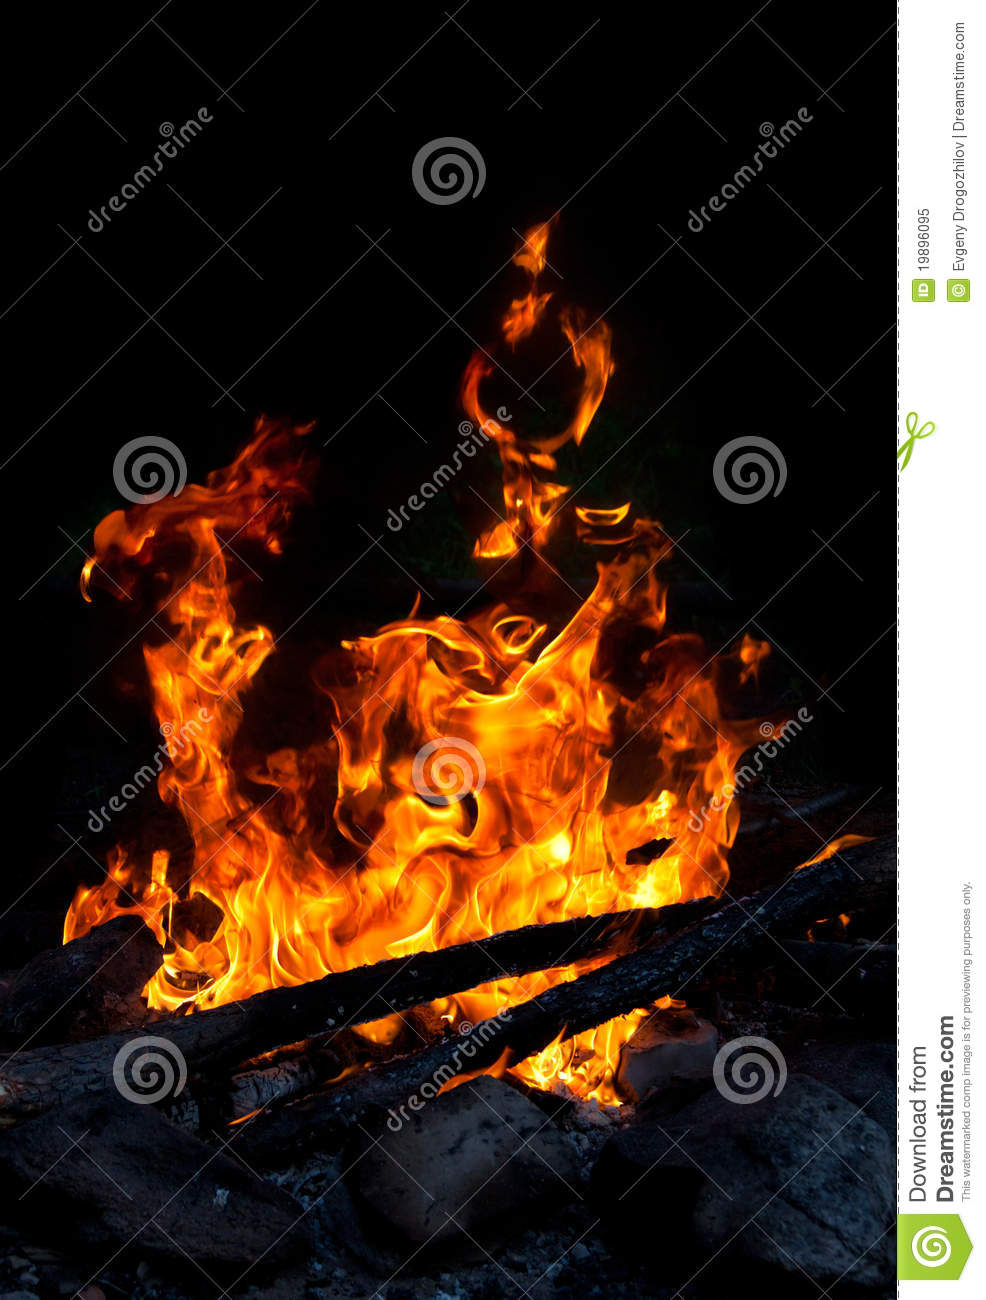 Download Campfire built outdoors stock image. Image of camp, dark - 19896095